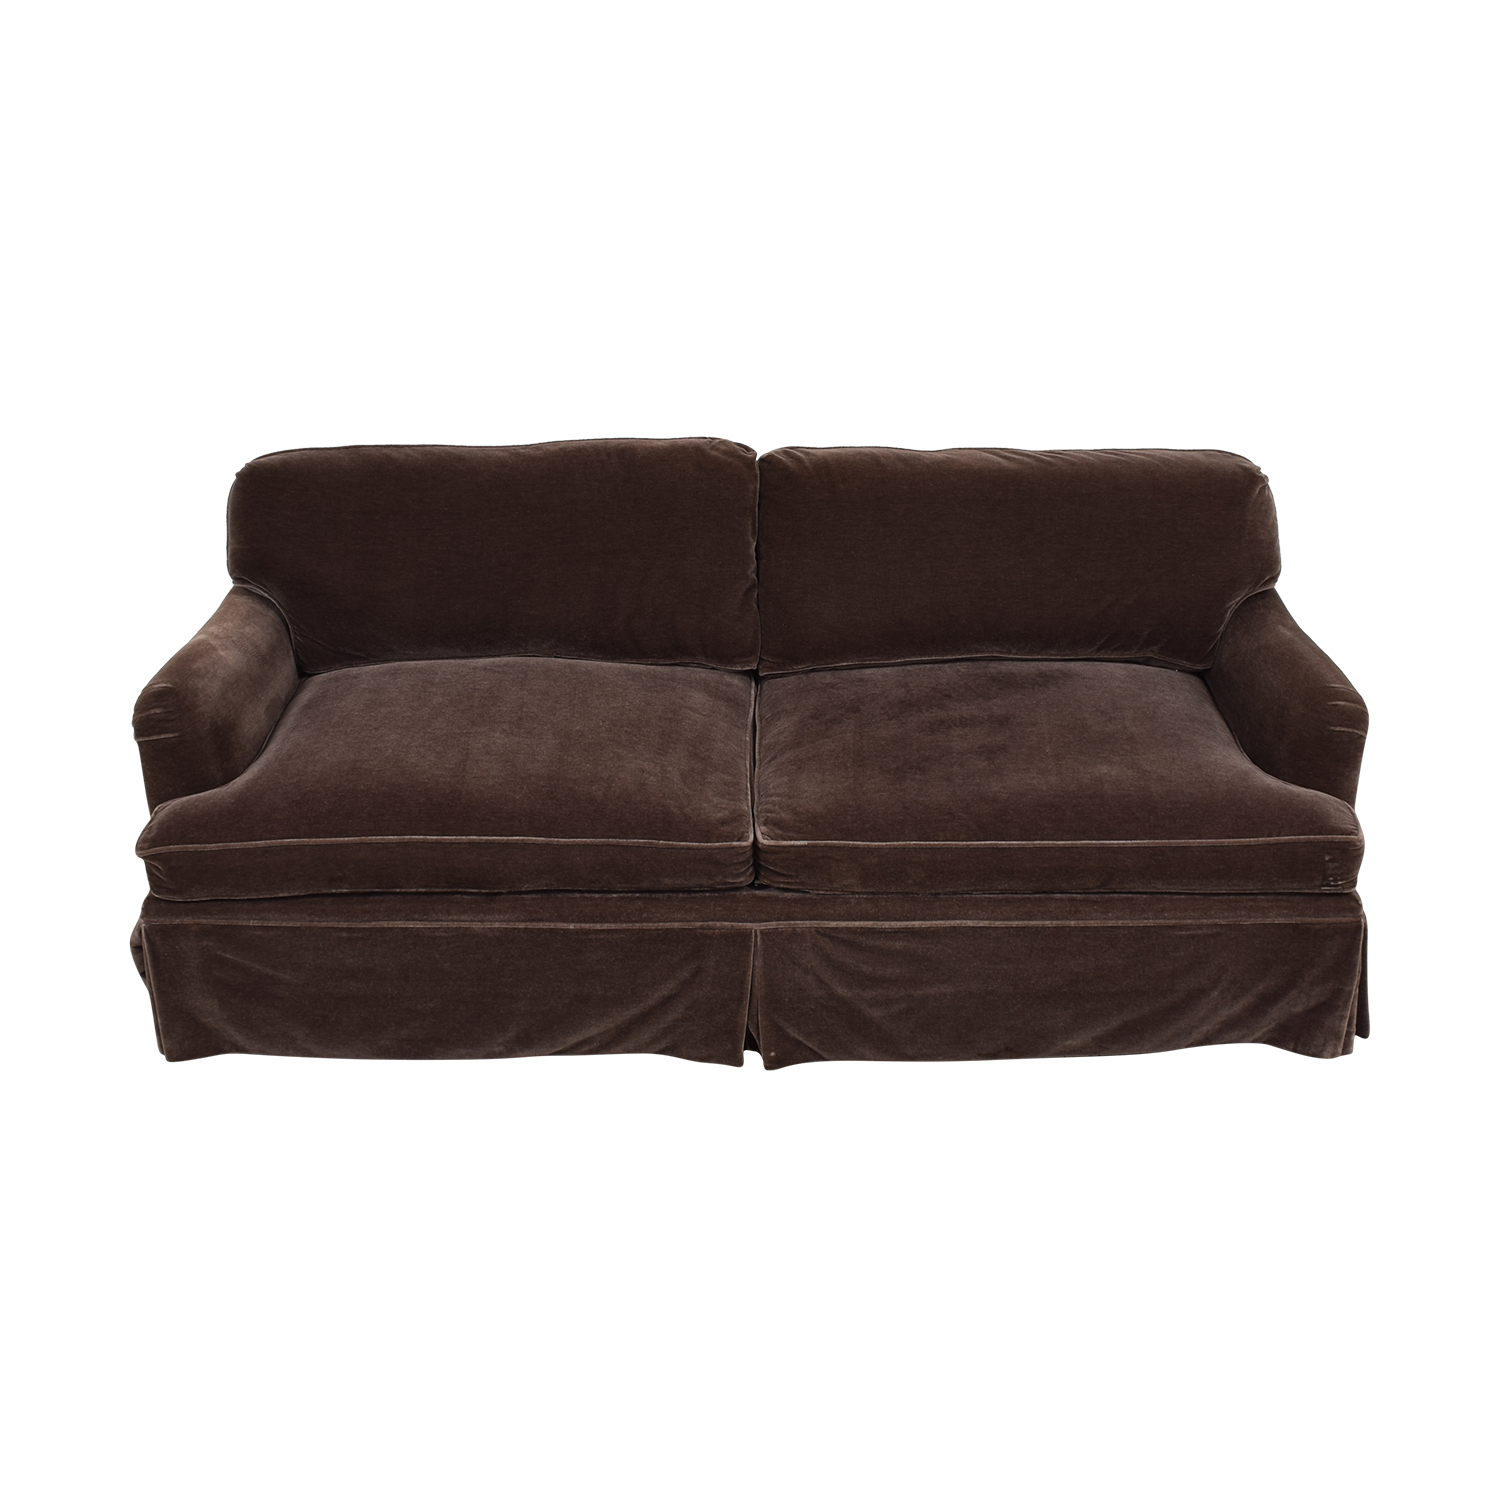 Fabulous 90 Off Brown Mohair Two Cushion Couch Sofas Lamtechconsult Wood Chair Design Ideas Lamtechconsultcom